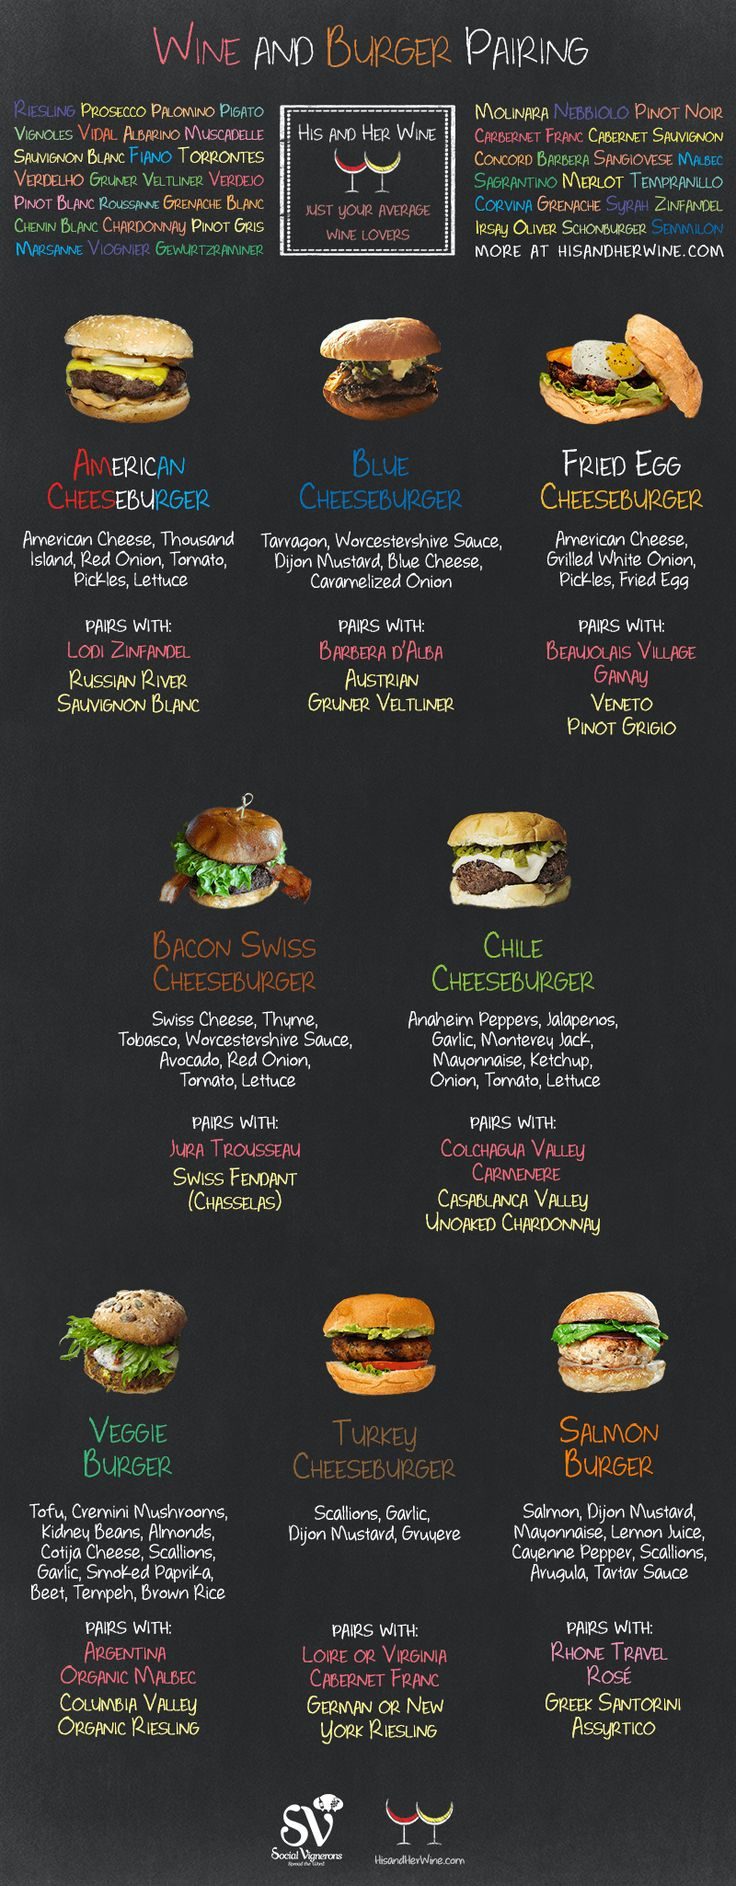 Making a decent pairing between a wine and a burger is not overly complicated. Most associations will go reasonably well. The acidity of the wine cutting through the richness of most burgers makes fora marriage made in heaven (provided both burger and wine are of good quality). But creating a match that provides the WOW …